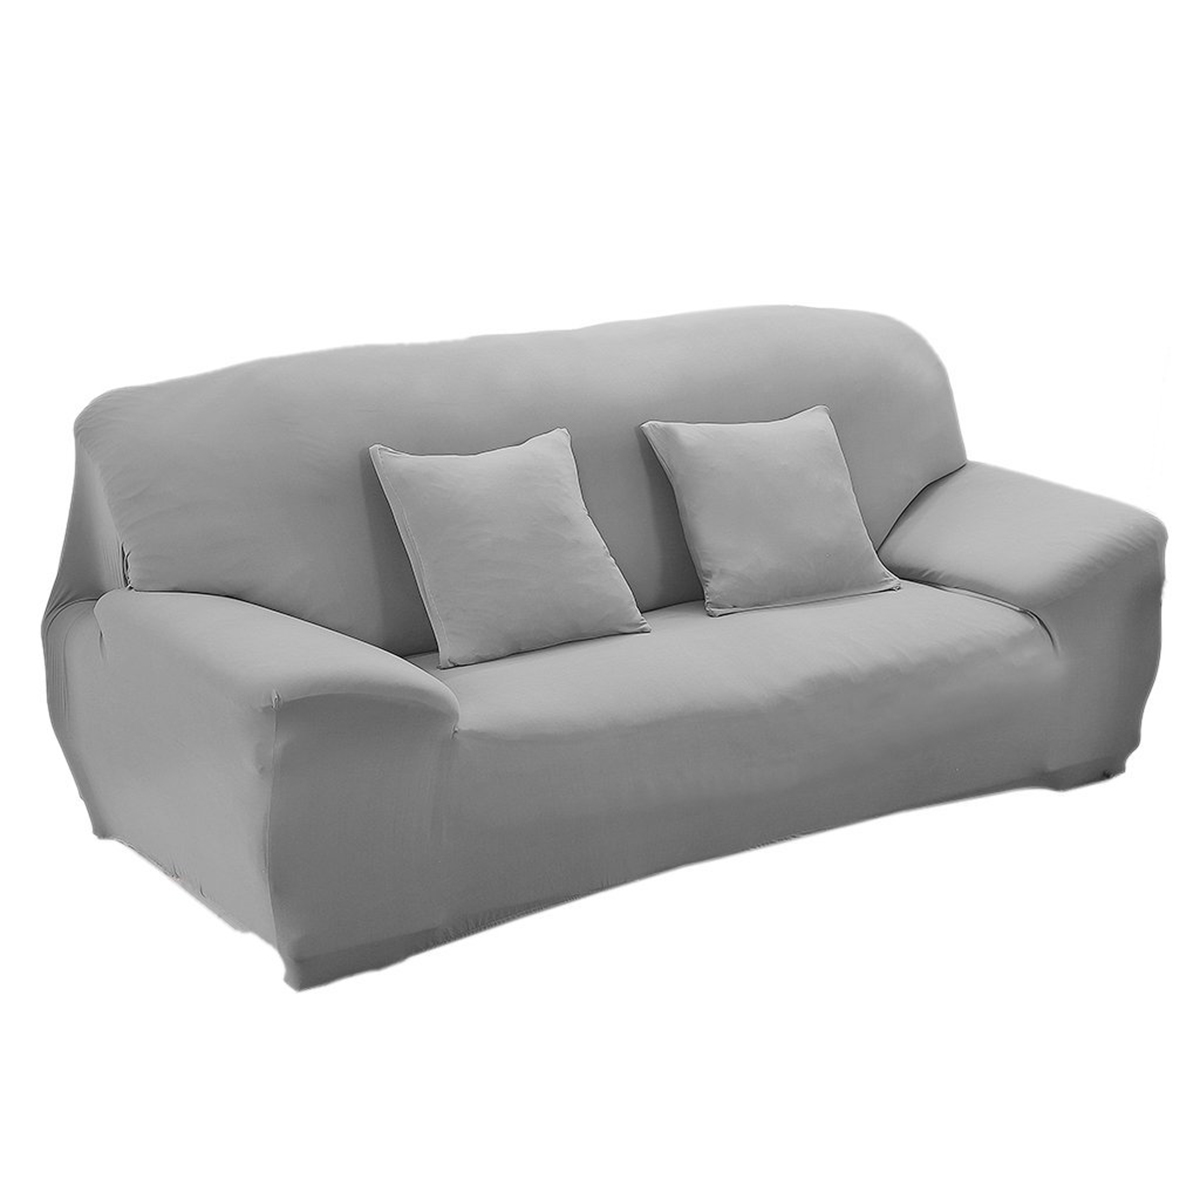 High quality sofas and chairs - High Quality 3 Seater High Elasticity Anti Mite Chair Covers Sofa Cover Slipcover Couch